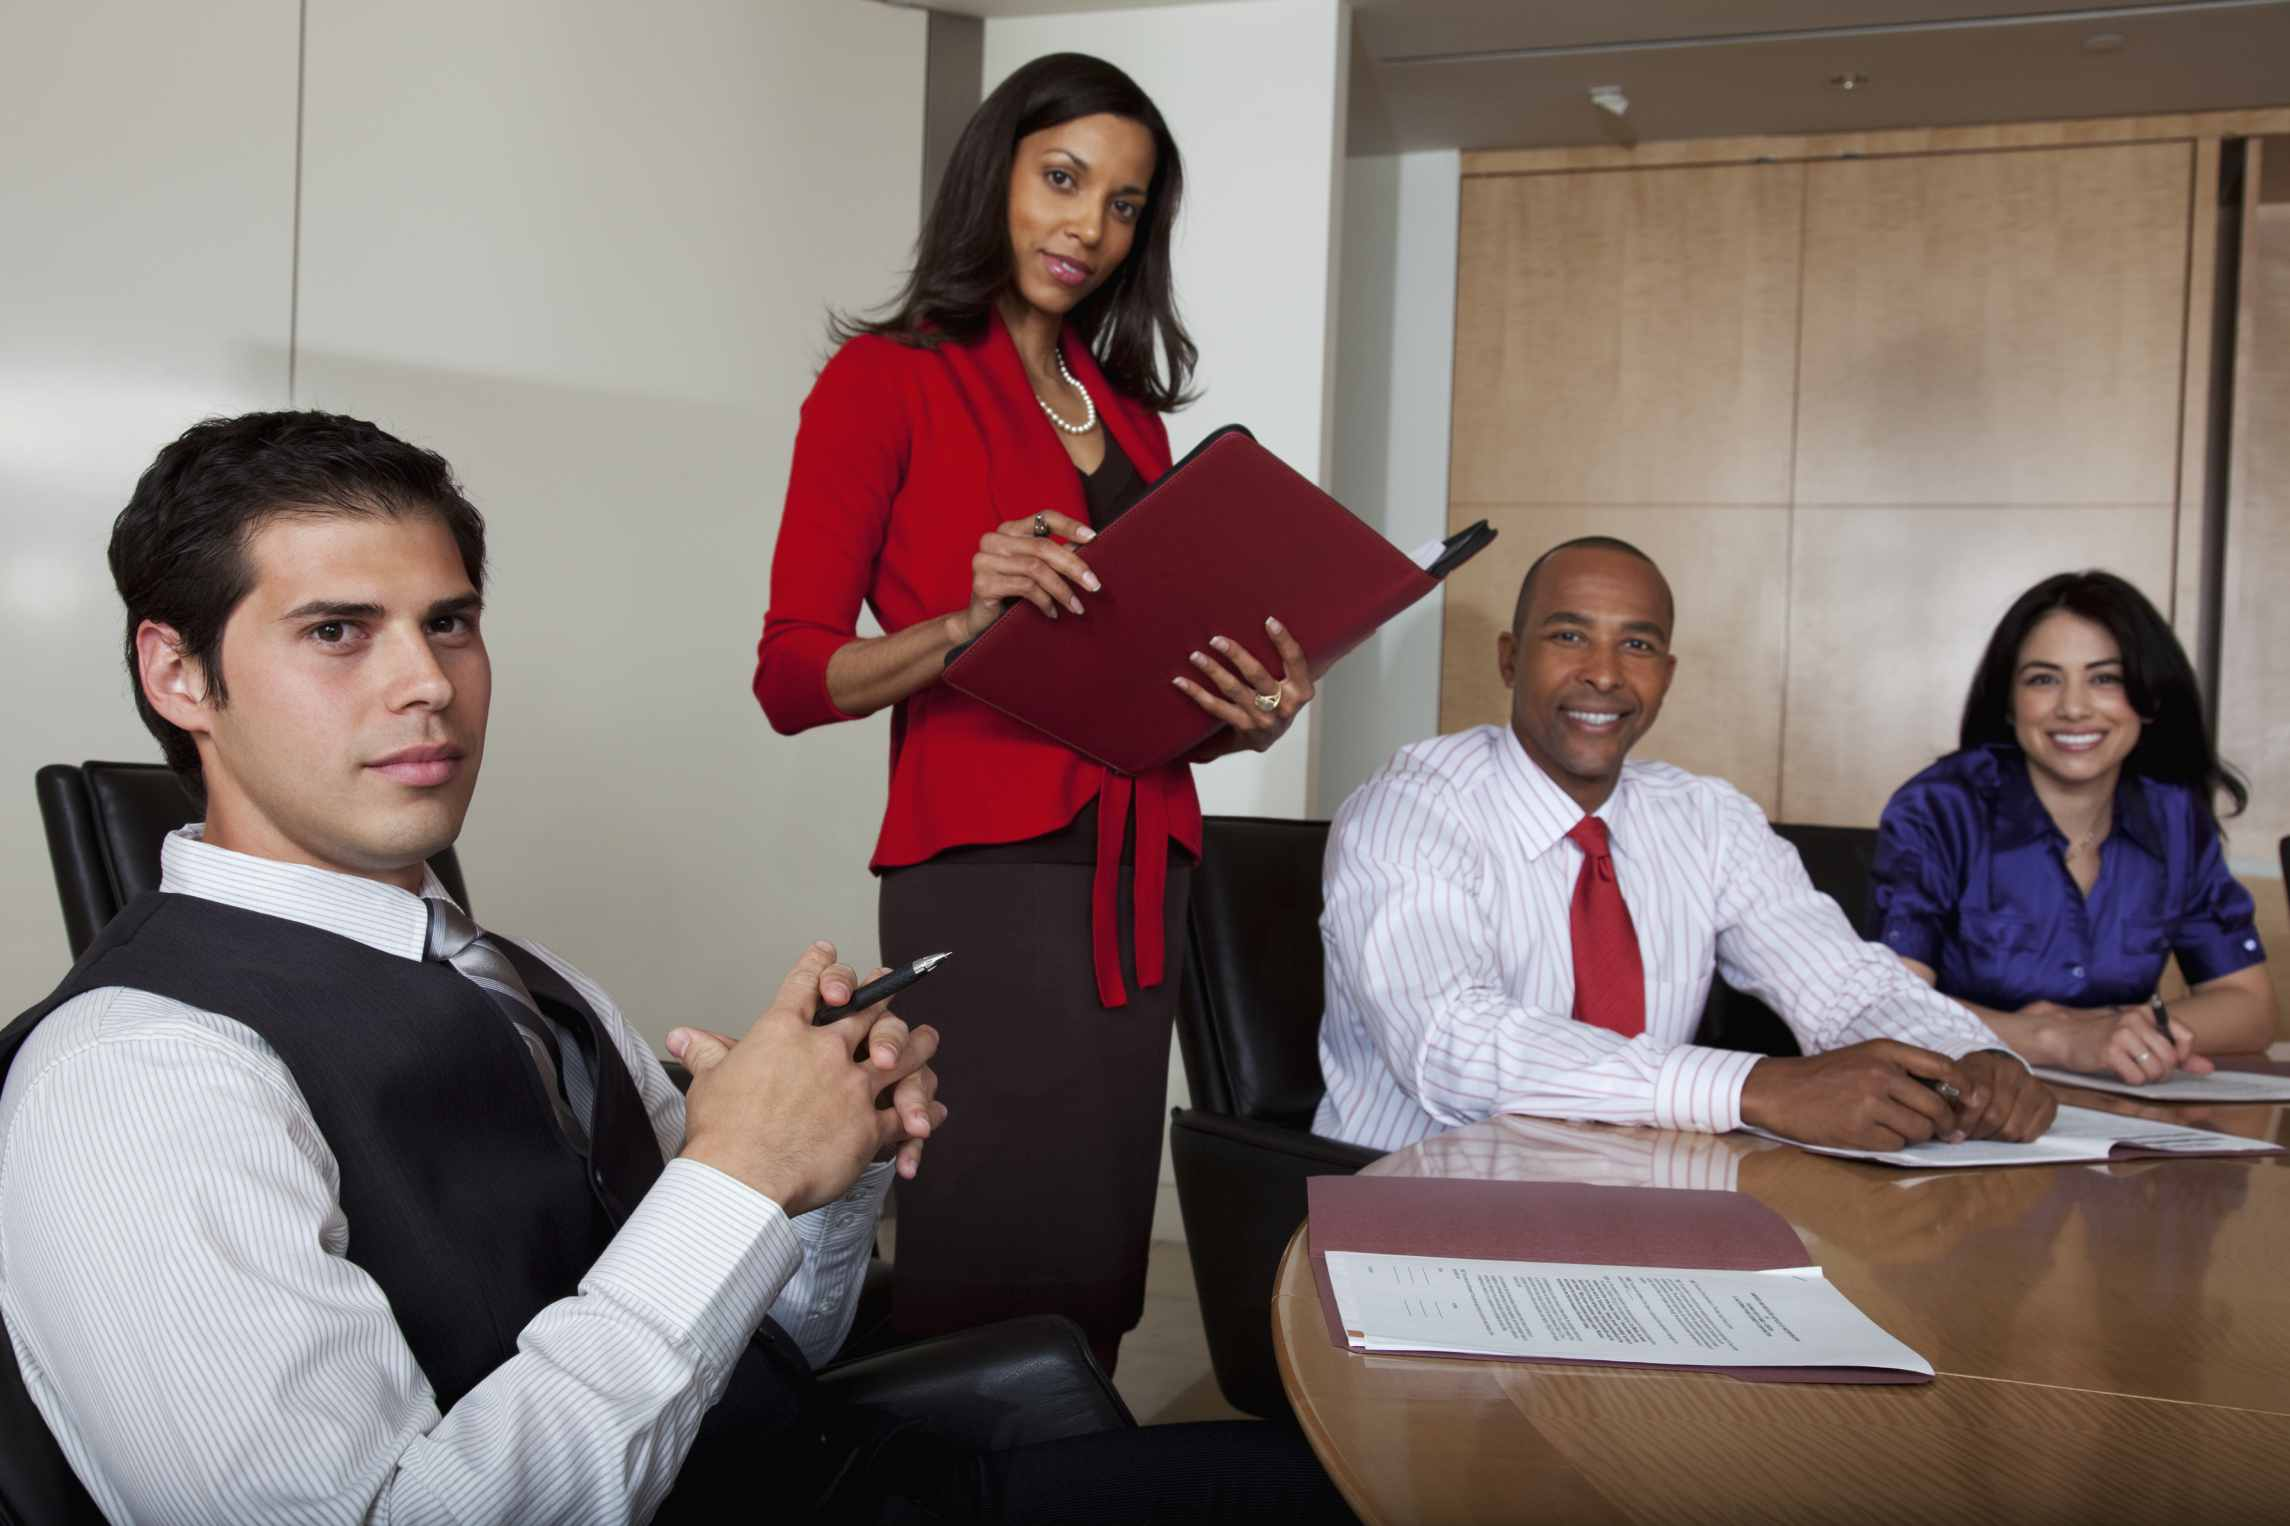 A training manager participates in diverse activities and has many roles.